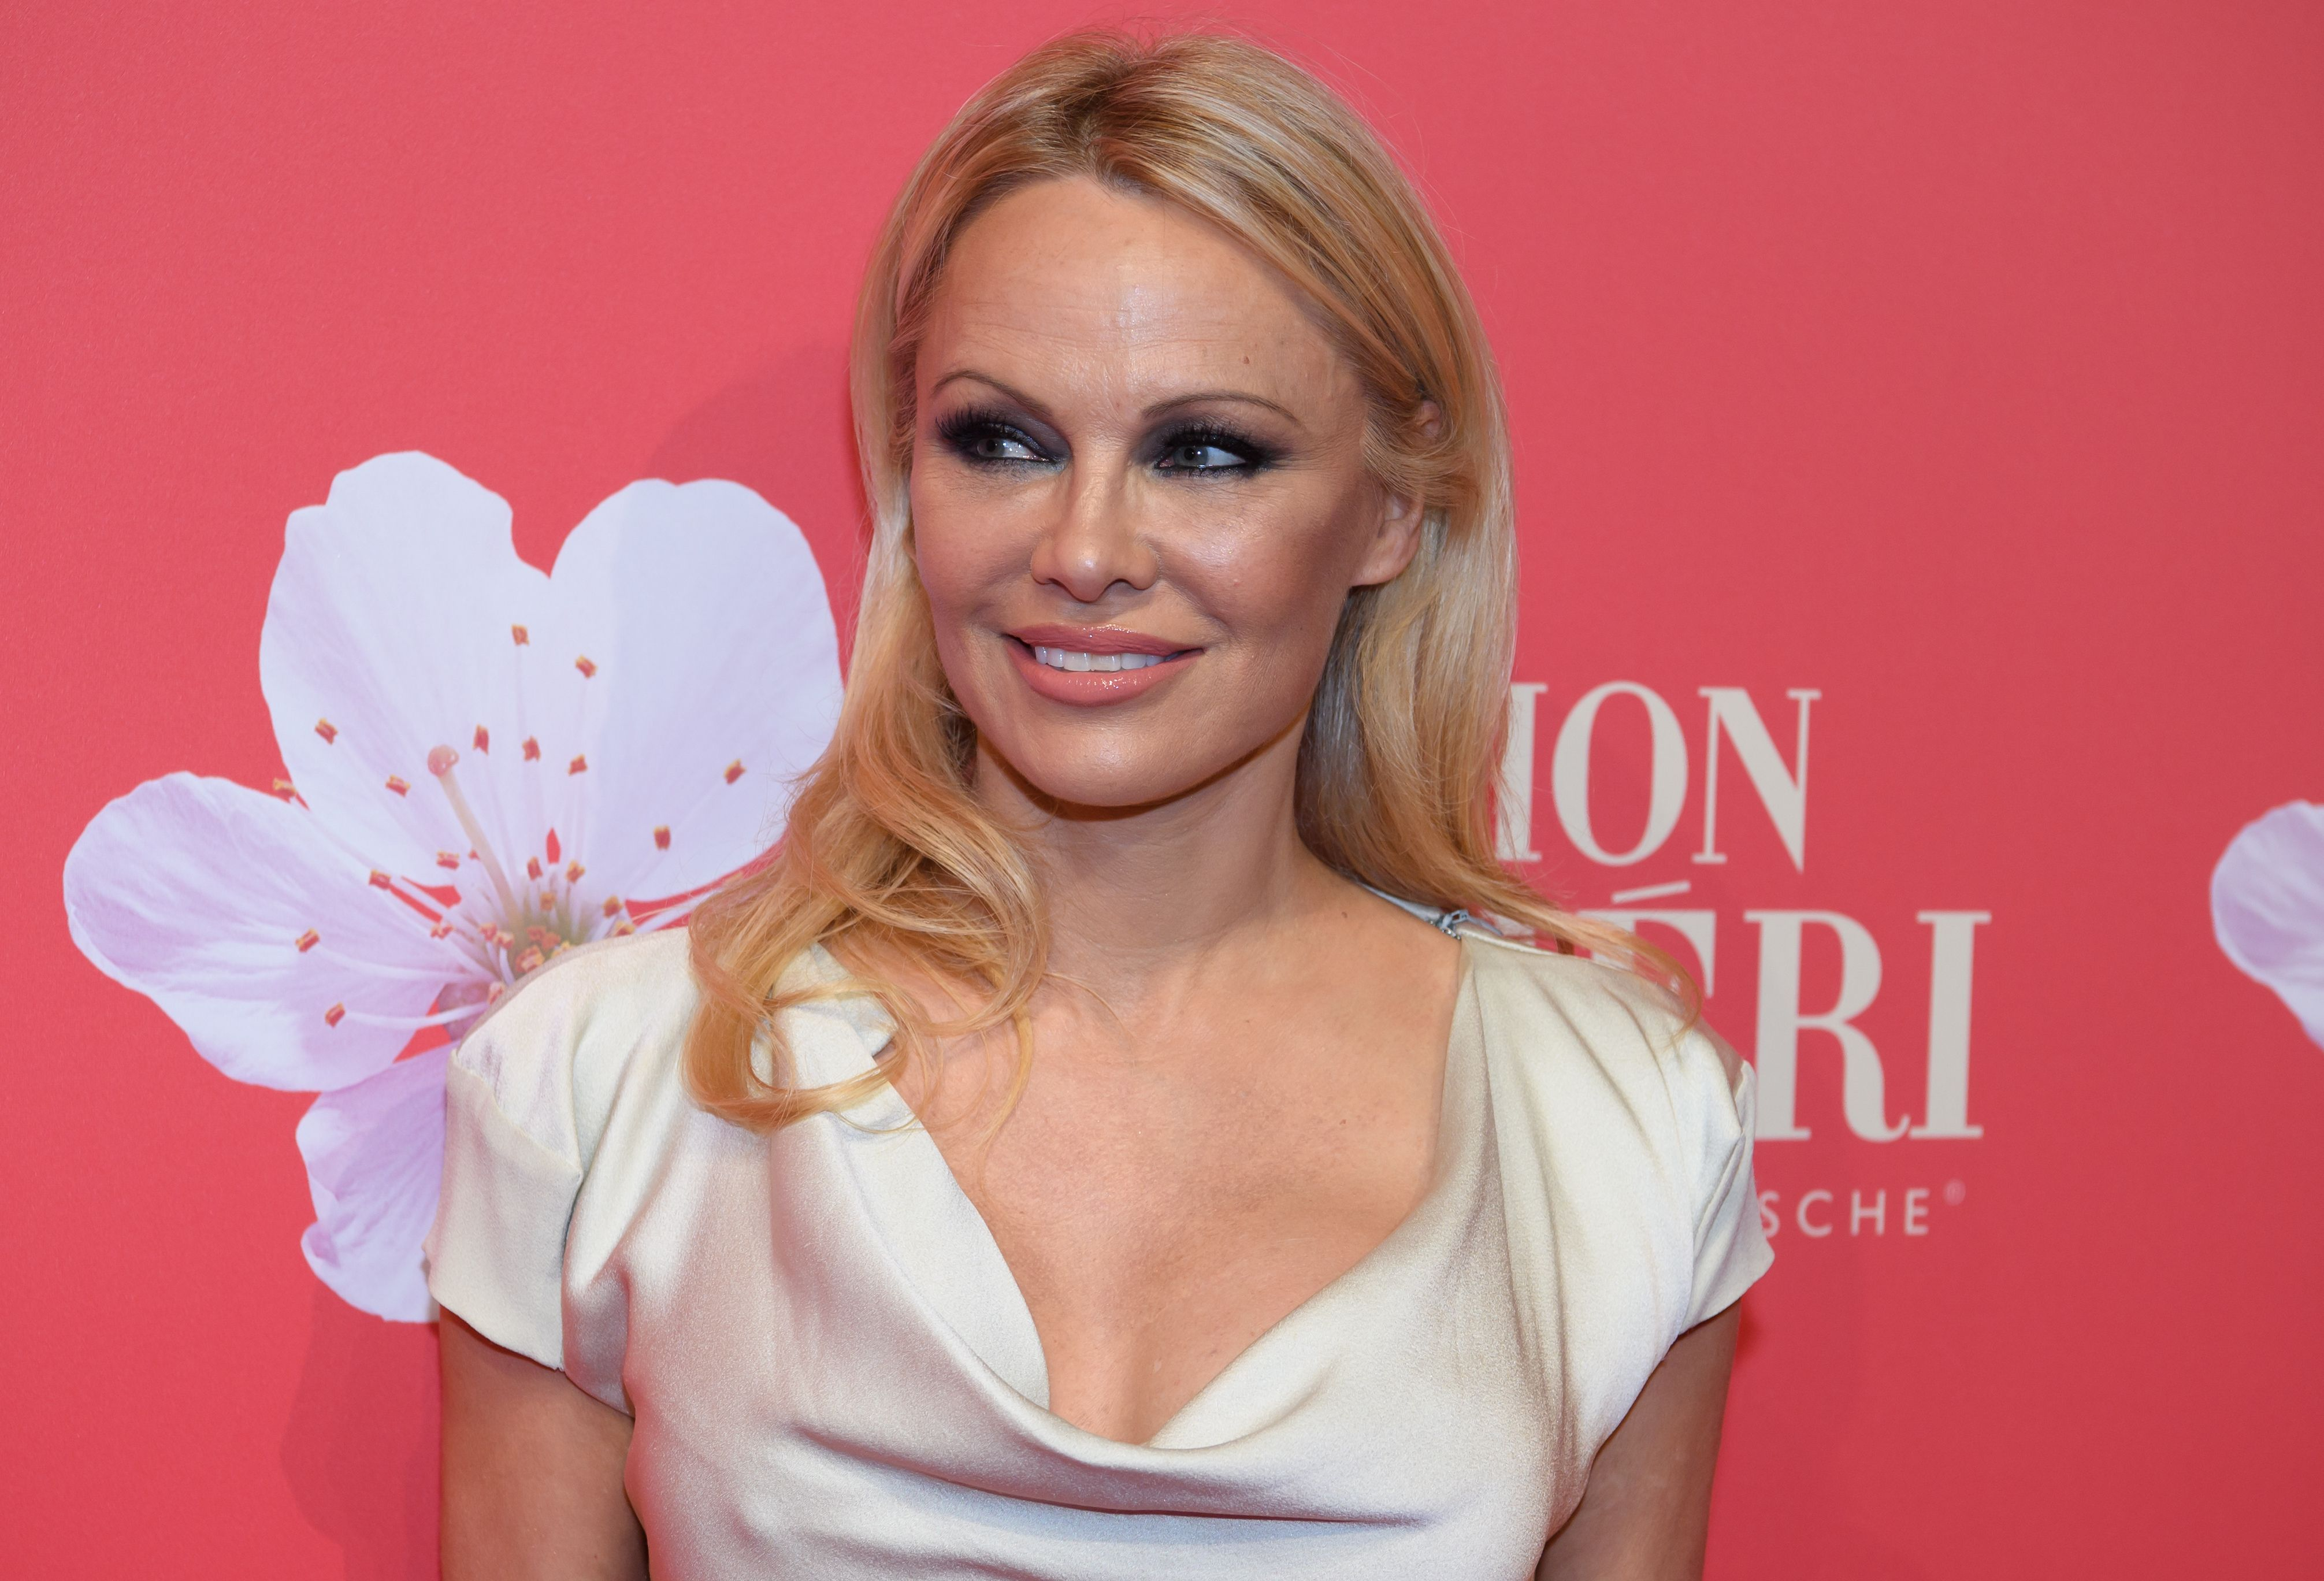 Pamela Anderson atthe Gala at the Mon Cheri Barbara day on December 4, 2018, in Bavaria, München | Photo: Sven Hoppe/dpa/picture alliance/Getty Images